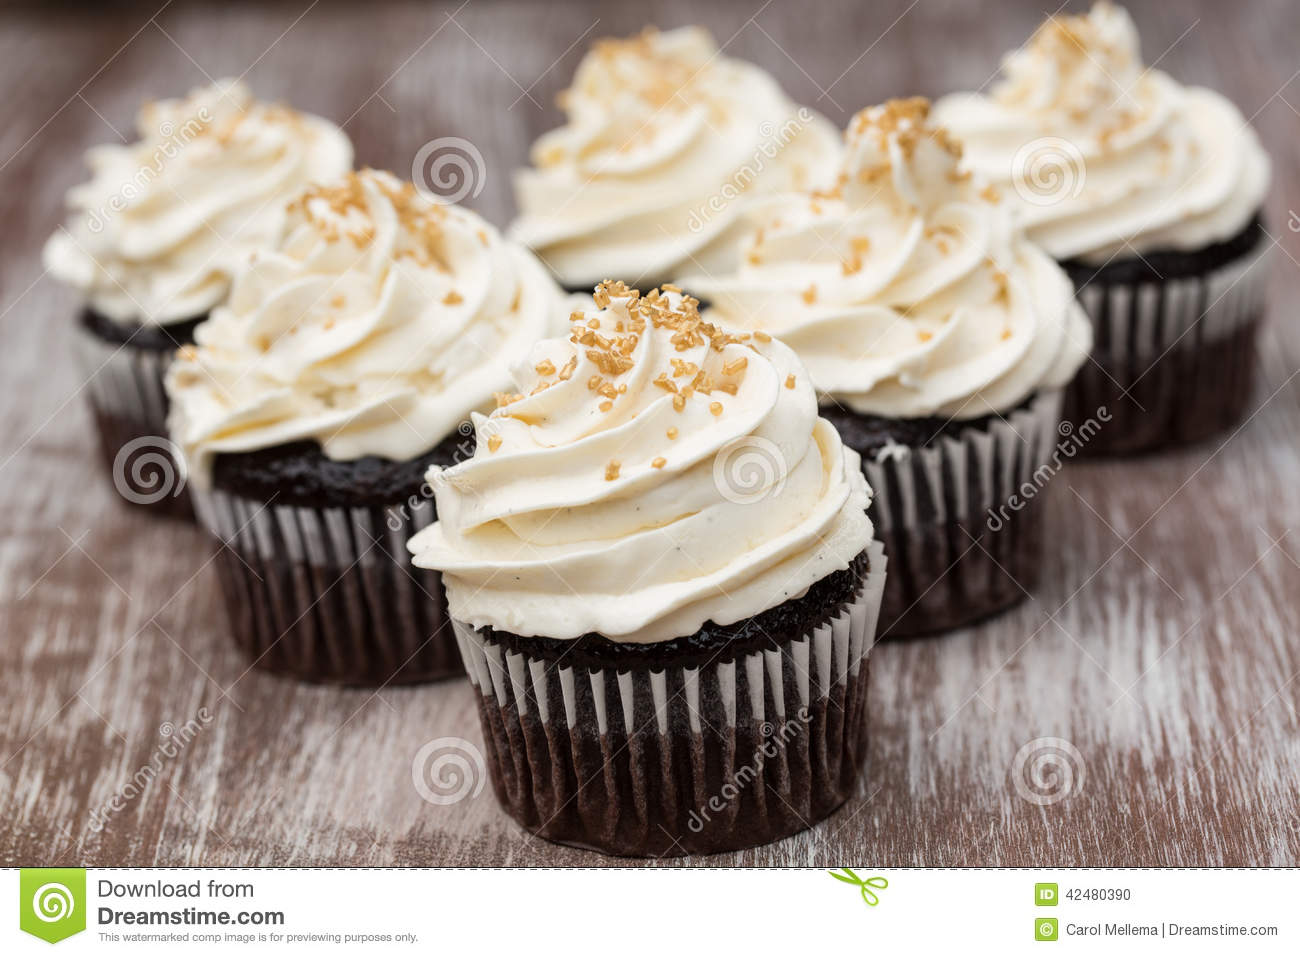 Chocolate Cupcakes With Vanilla Buttercream Frosting Stock Photo ...